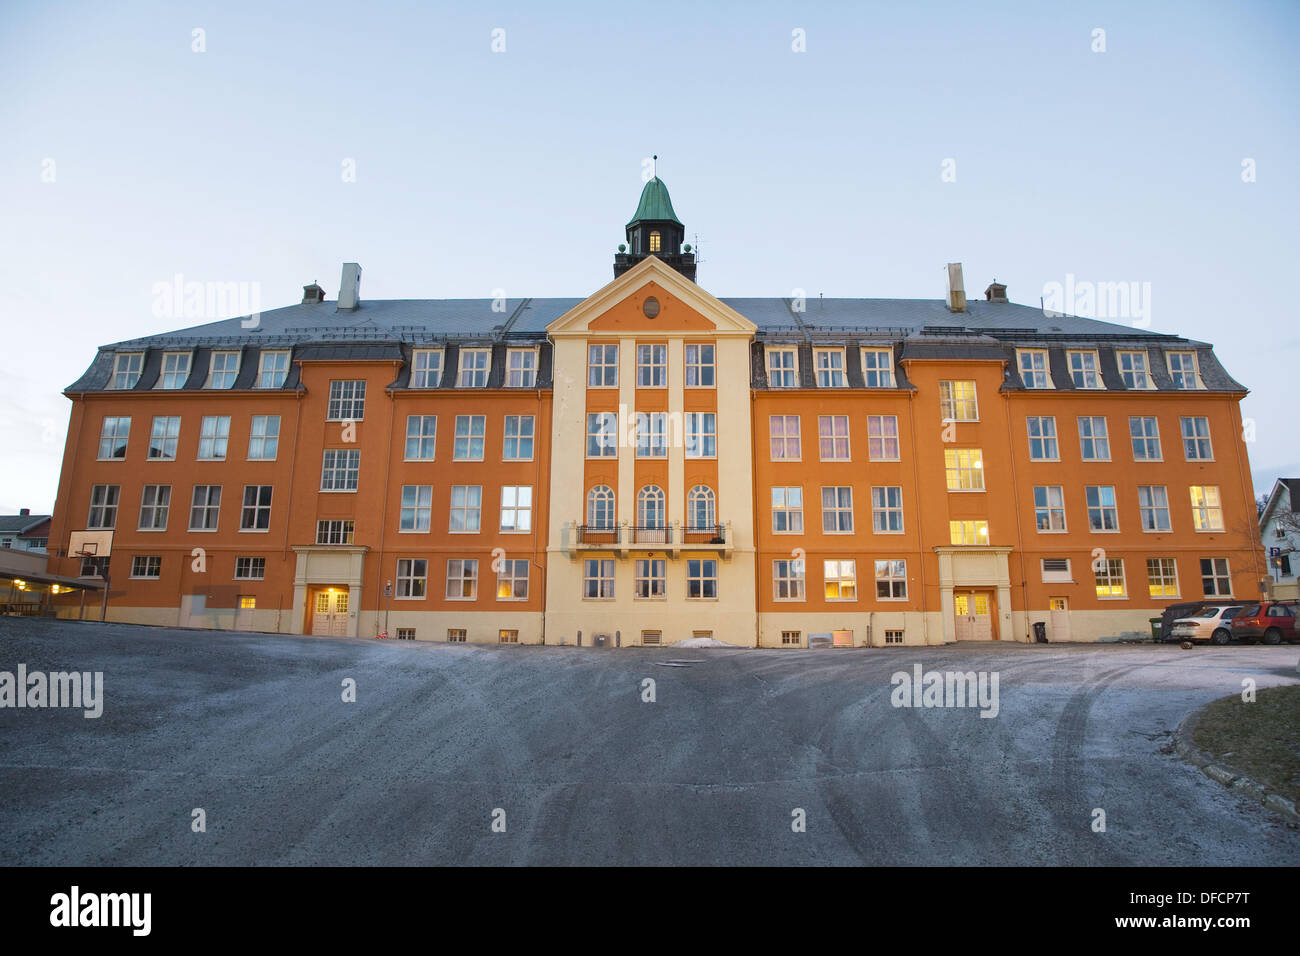 Kongsbakken Upper Secondary School in winter, polar night, Tromso. Norway - Stock Image